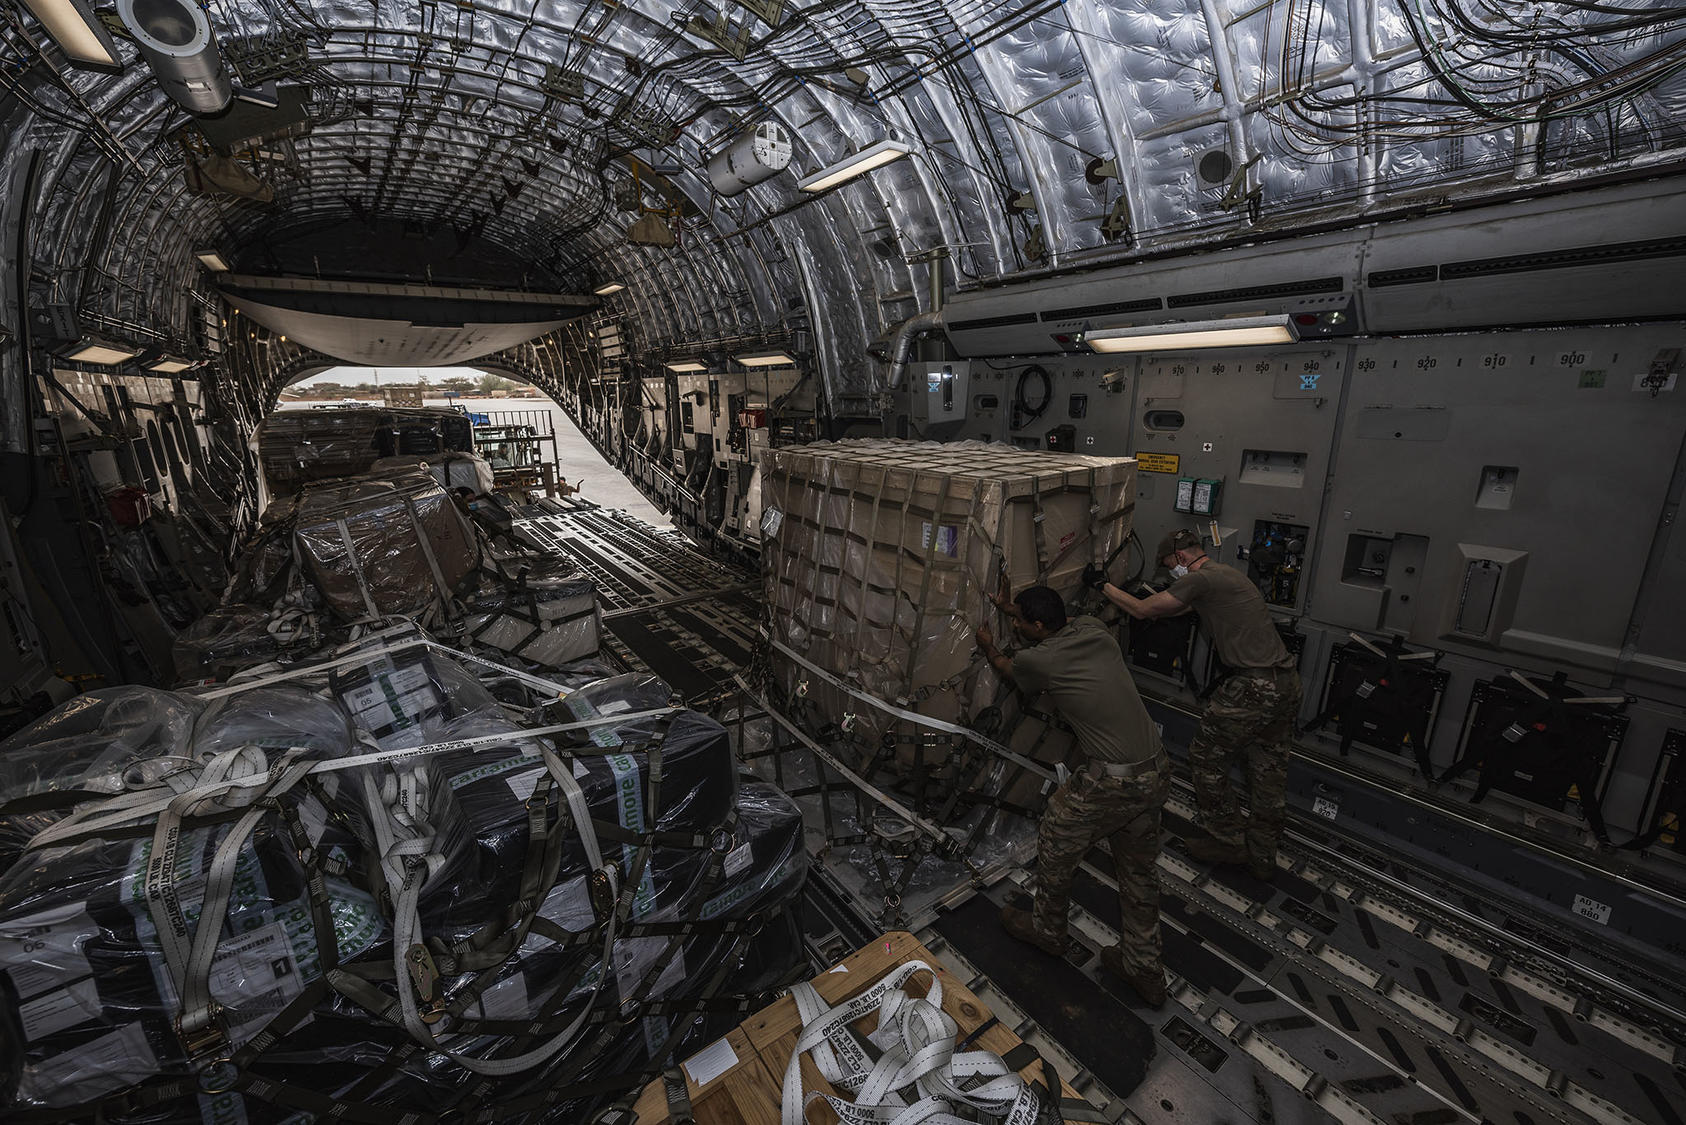 U.S. Air Force Airmen unload 4,000 pounds of medical supplies to be delivered to the Government of Ghana, Niamey, Niger, April 23, 2020. (Staff Sgt. Devin Nothstine/U.S. Airforce)